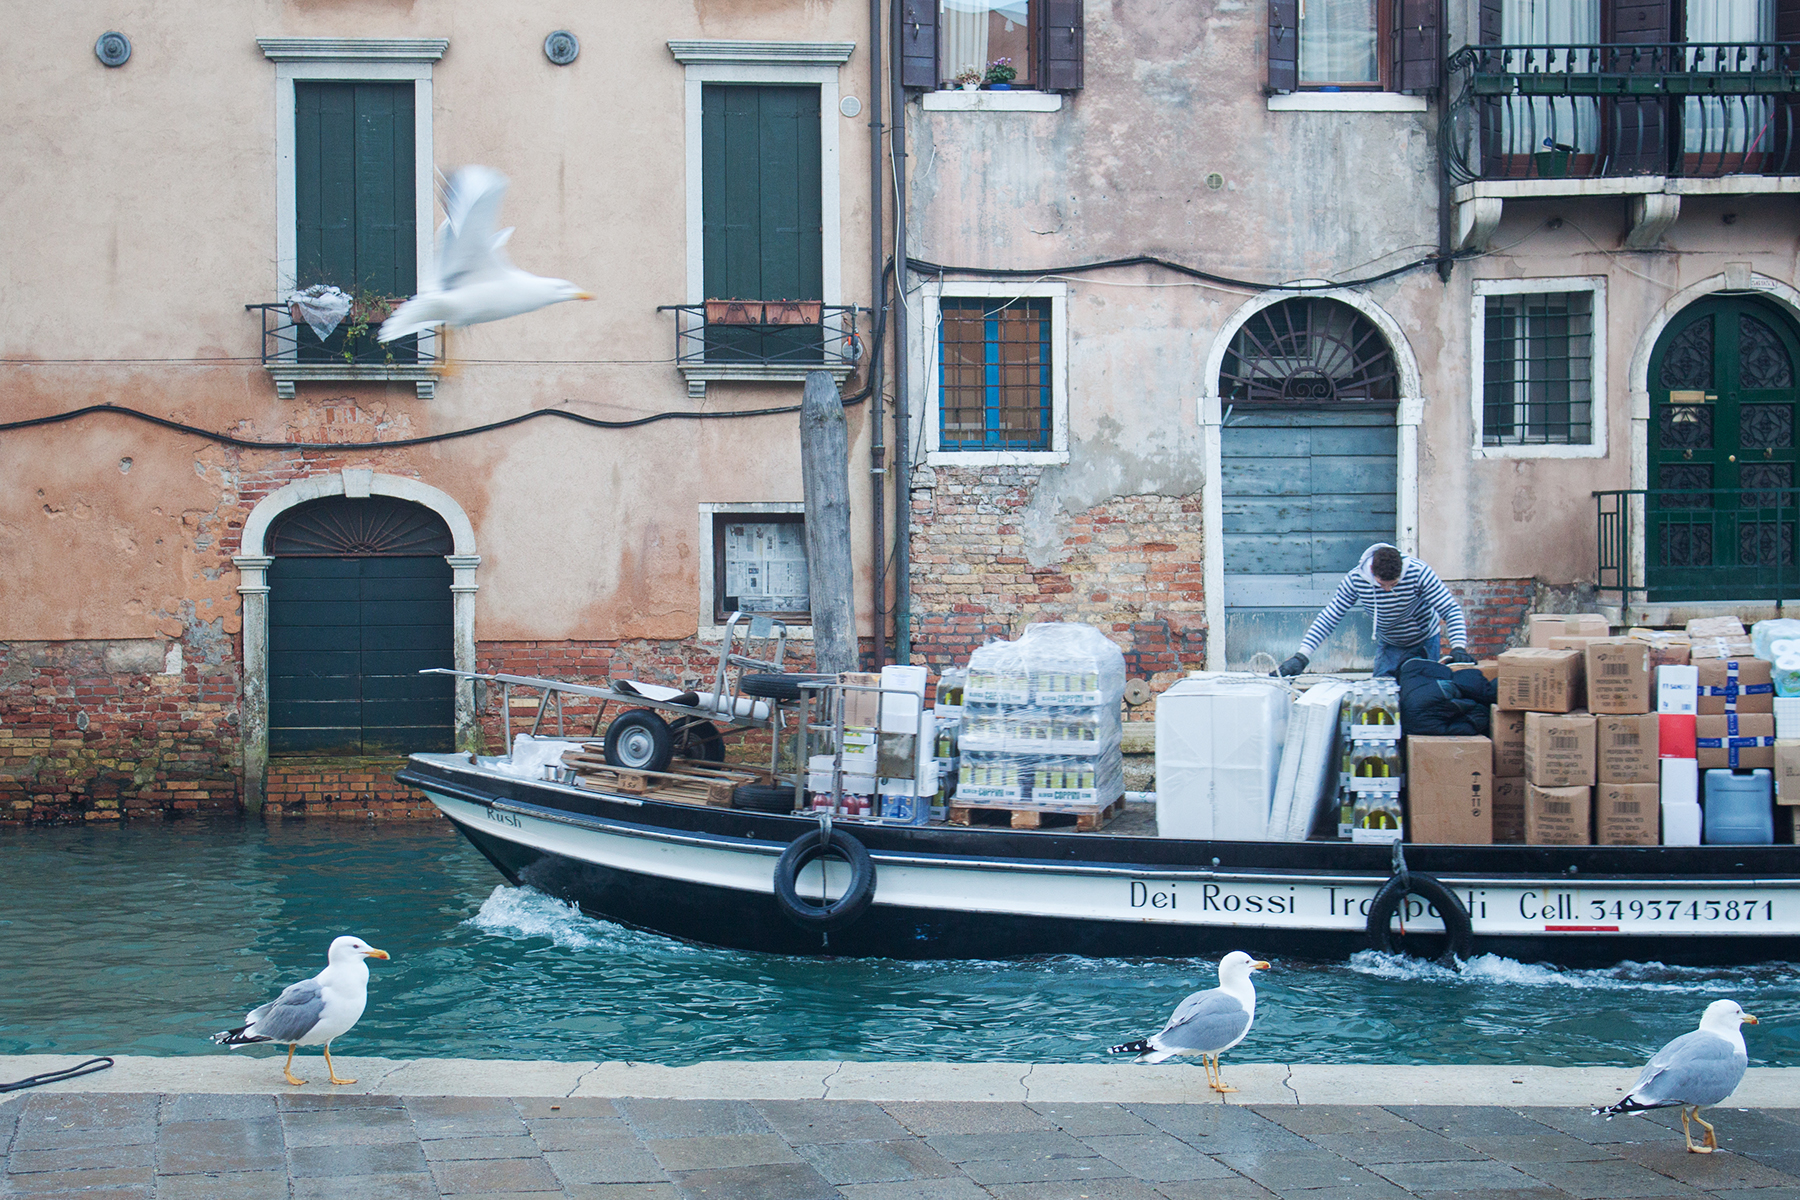 Streets of Venice, Man on Boat | awaywithkatie.com